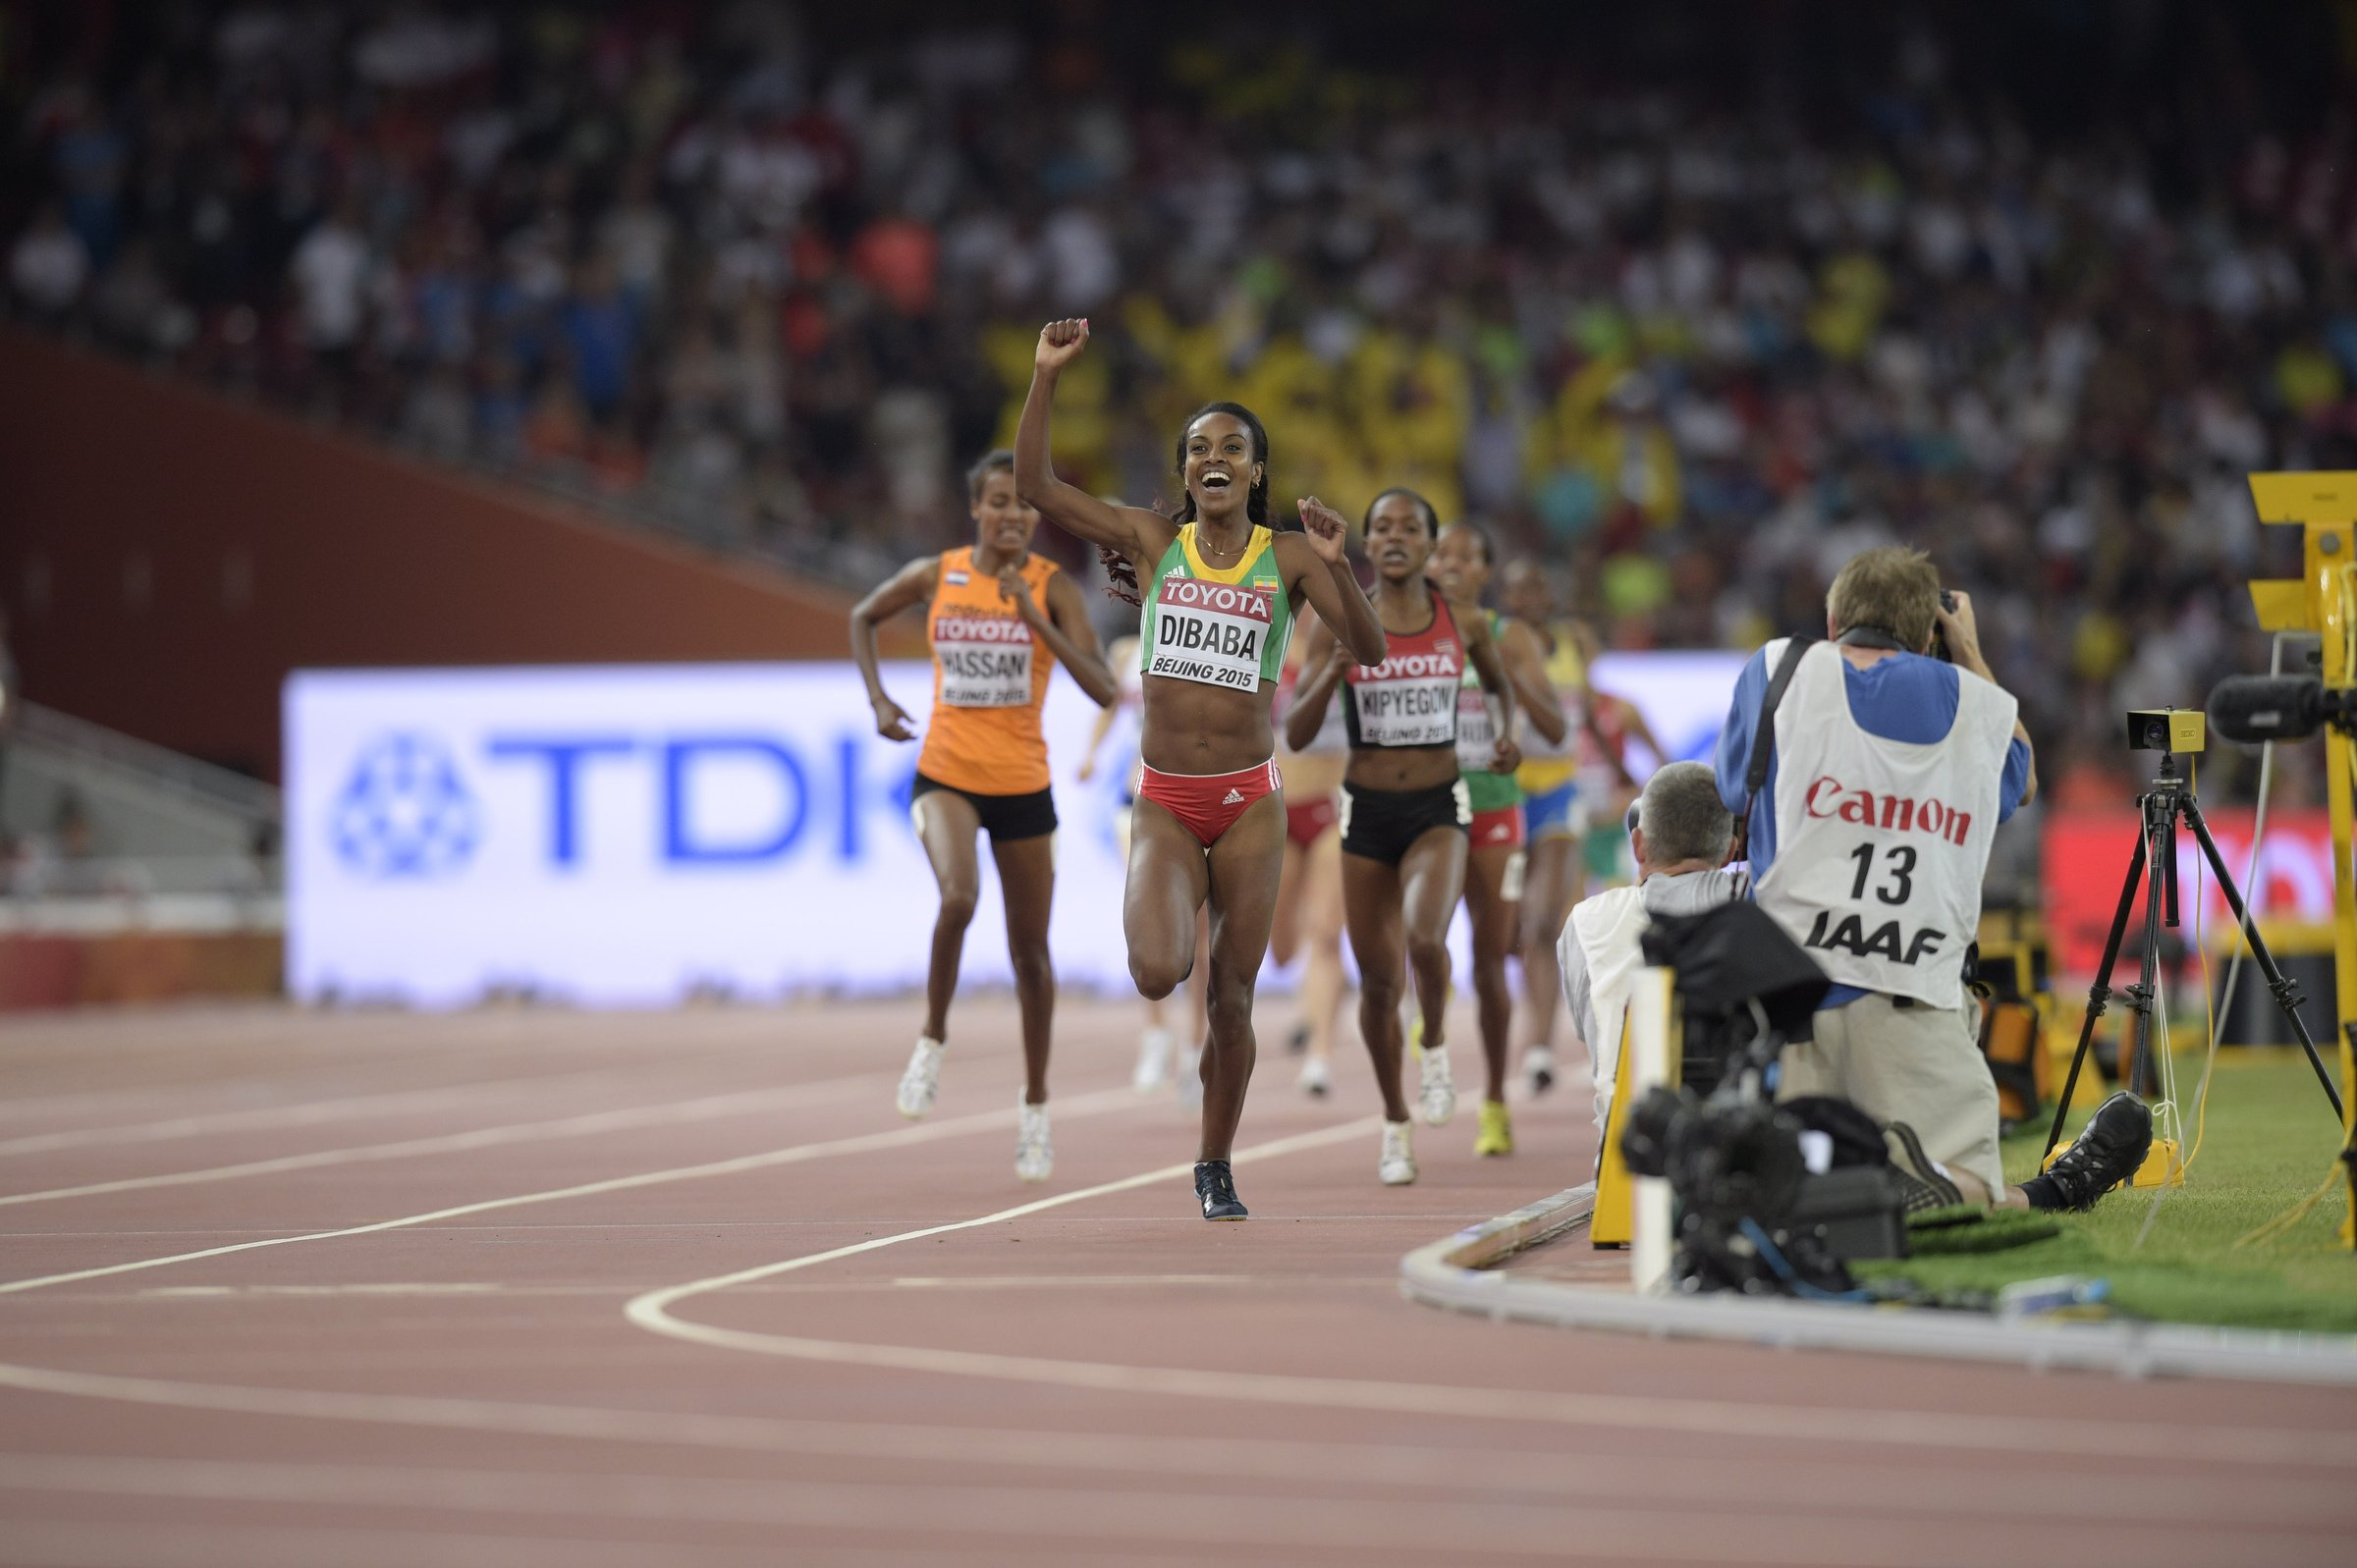 Sifan Hassan (NED) and Faith Kipyegon (KEN) can not catch world record holder Genzebe Dibaba (ETH) as she wins gold in the women's 1,500-meter run.